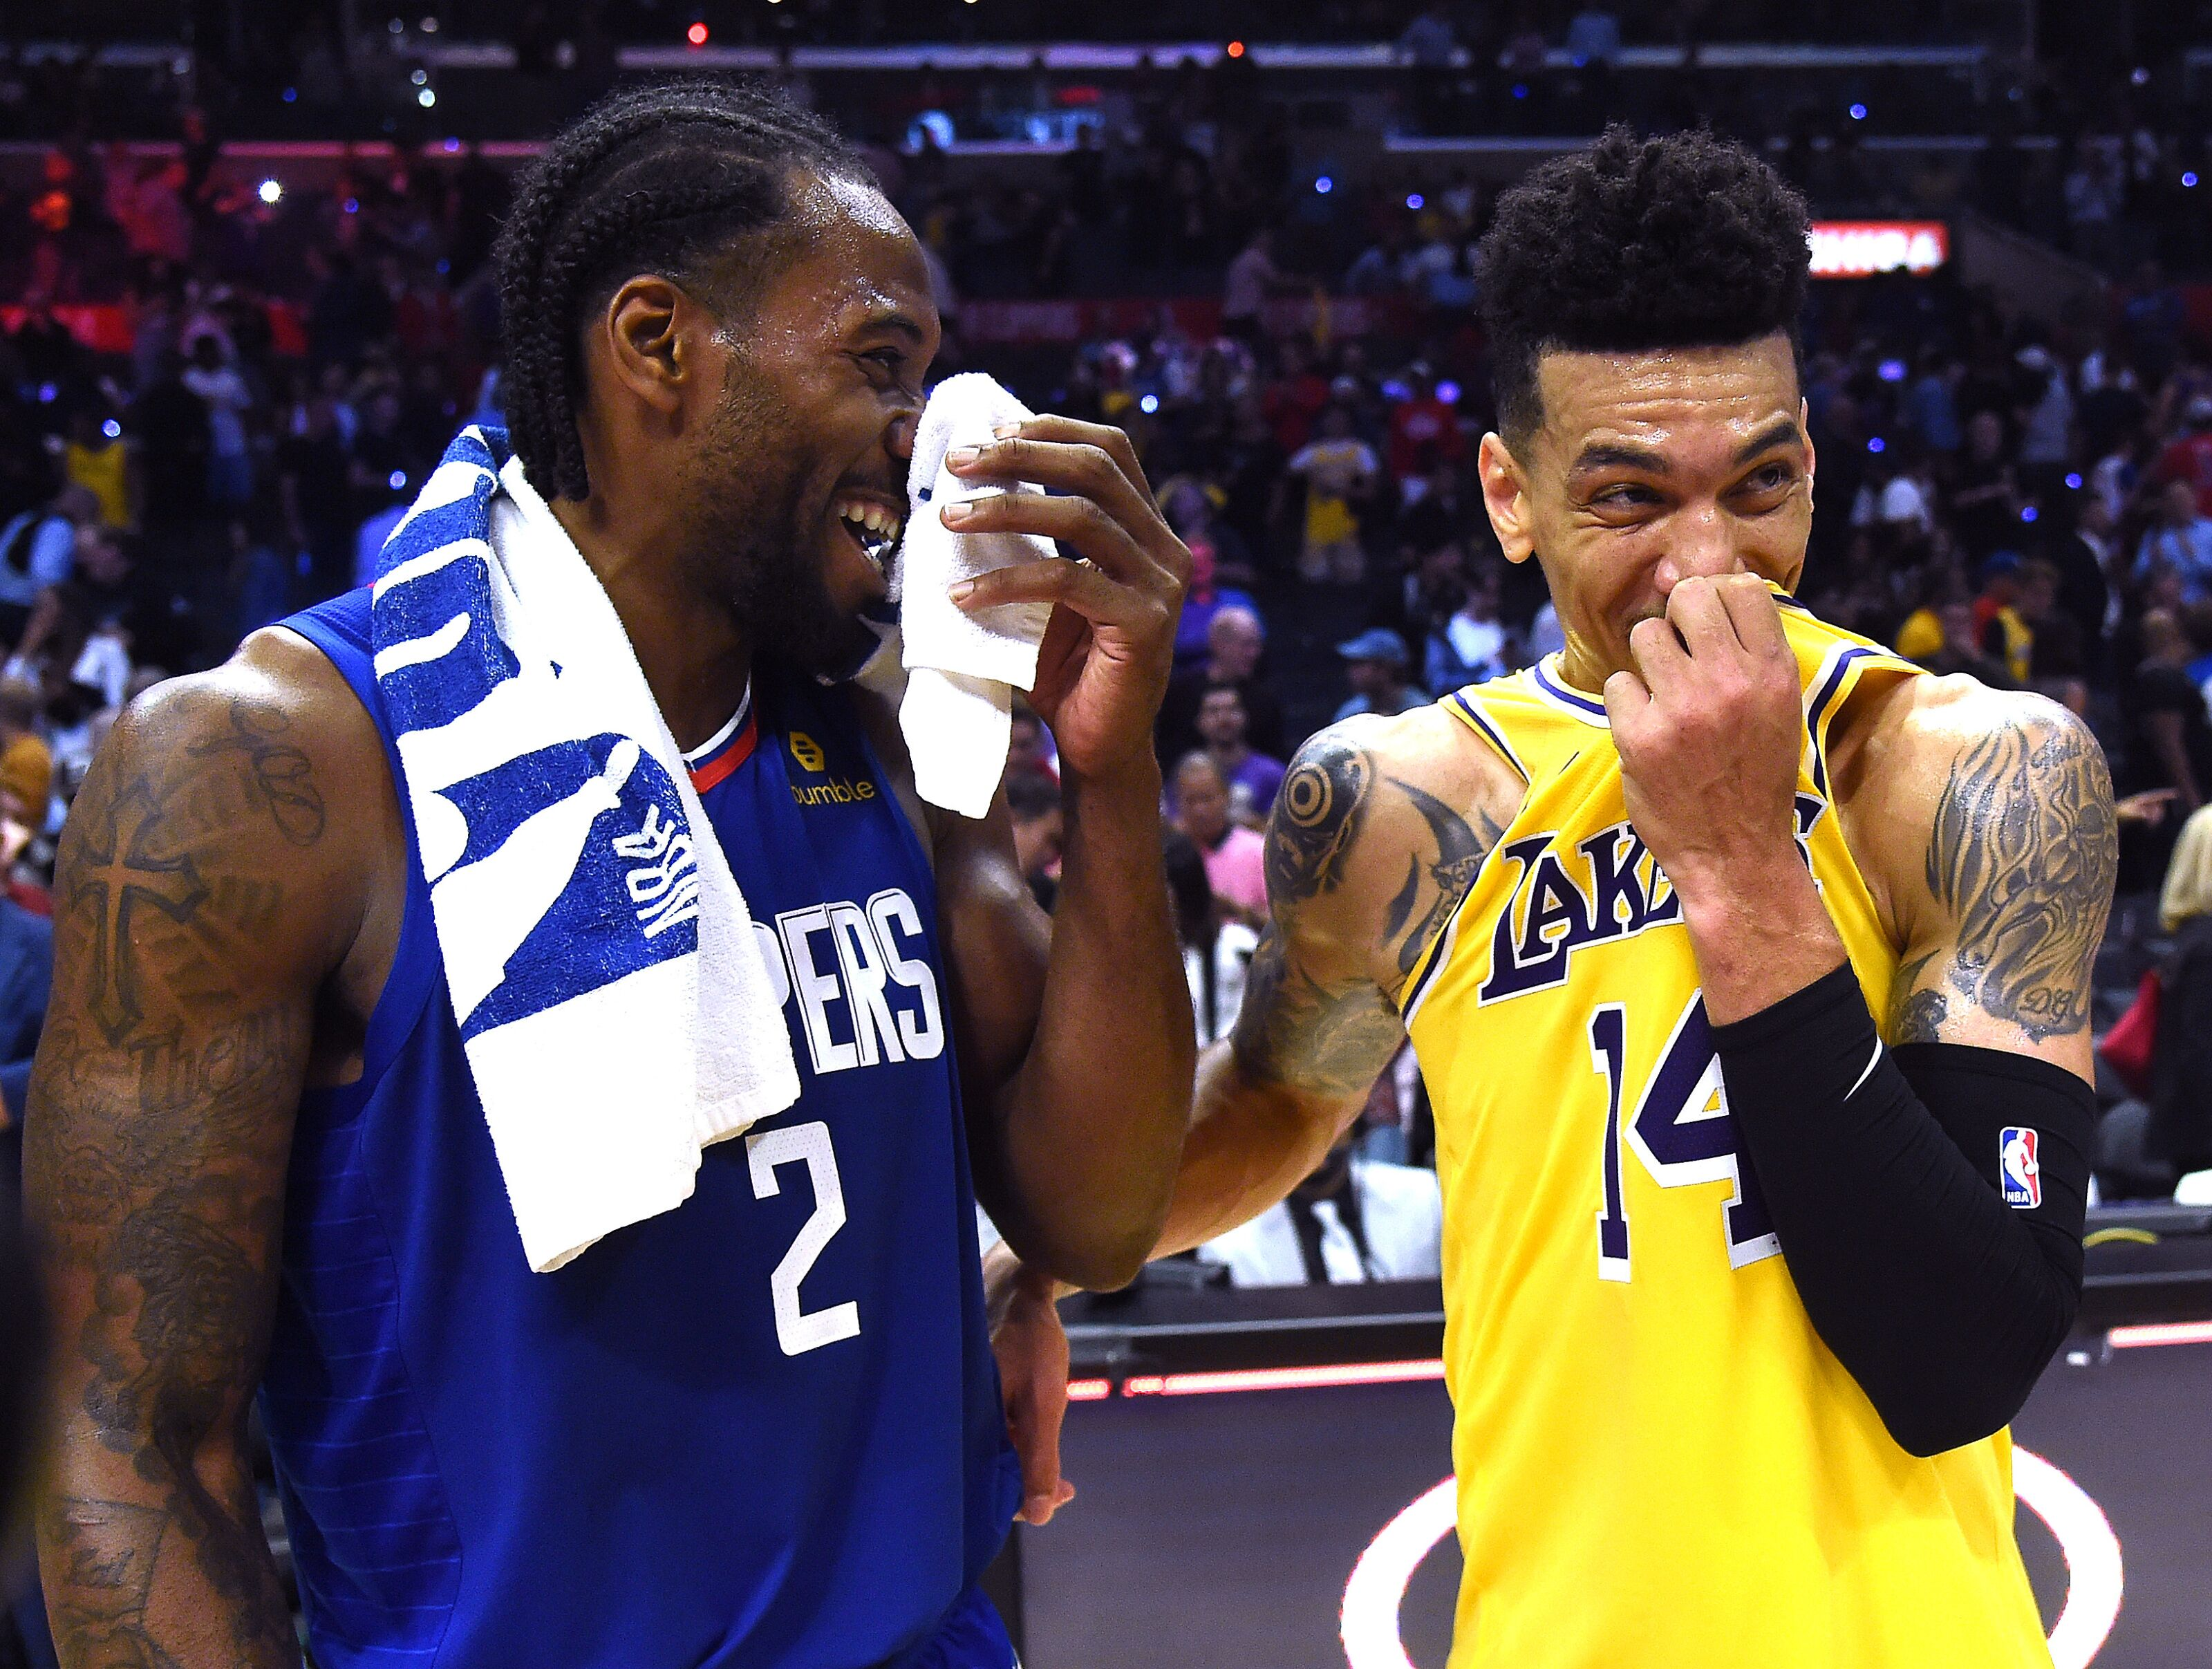 UNC Basketball Alumni: Danny Green sets Lakers record